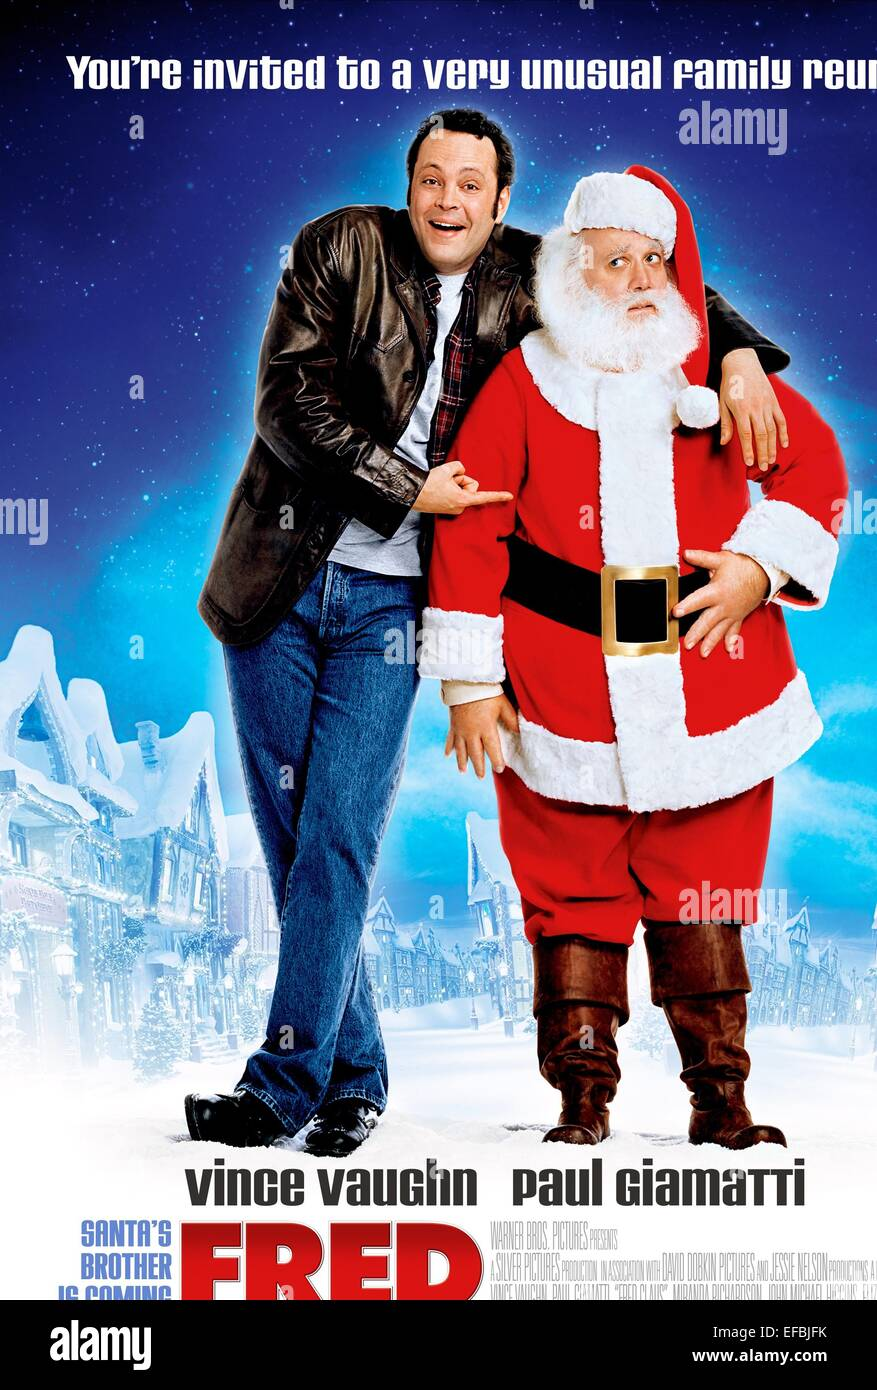 vince vaughn paul giamatti poster fred claus 2007 stock image - Vince Vaughn Christmas Movie